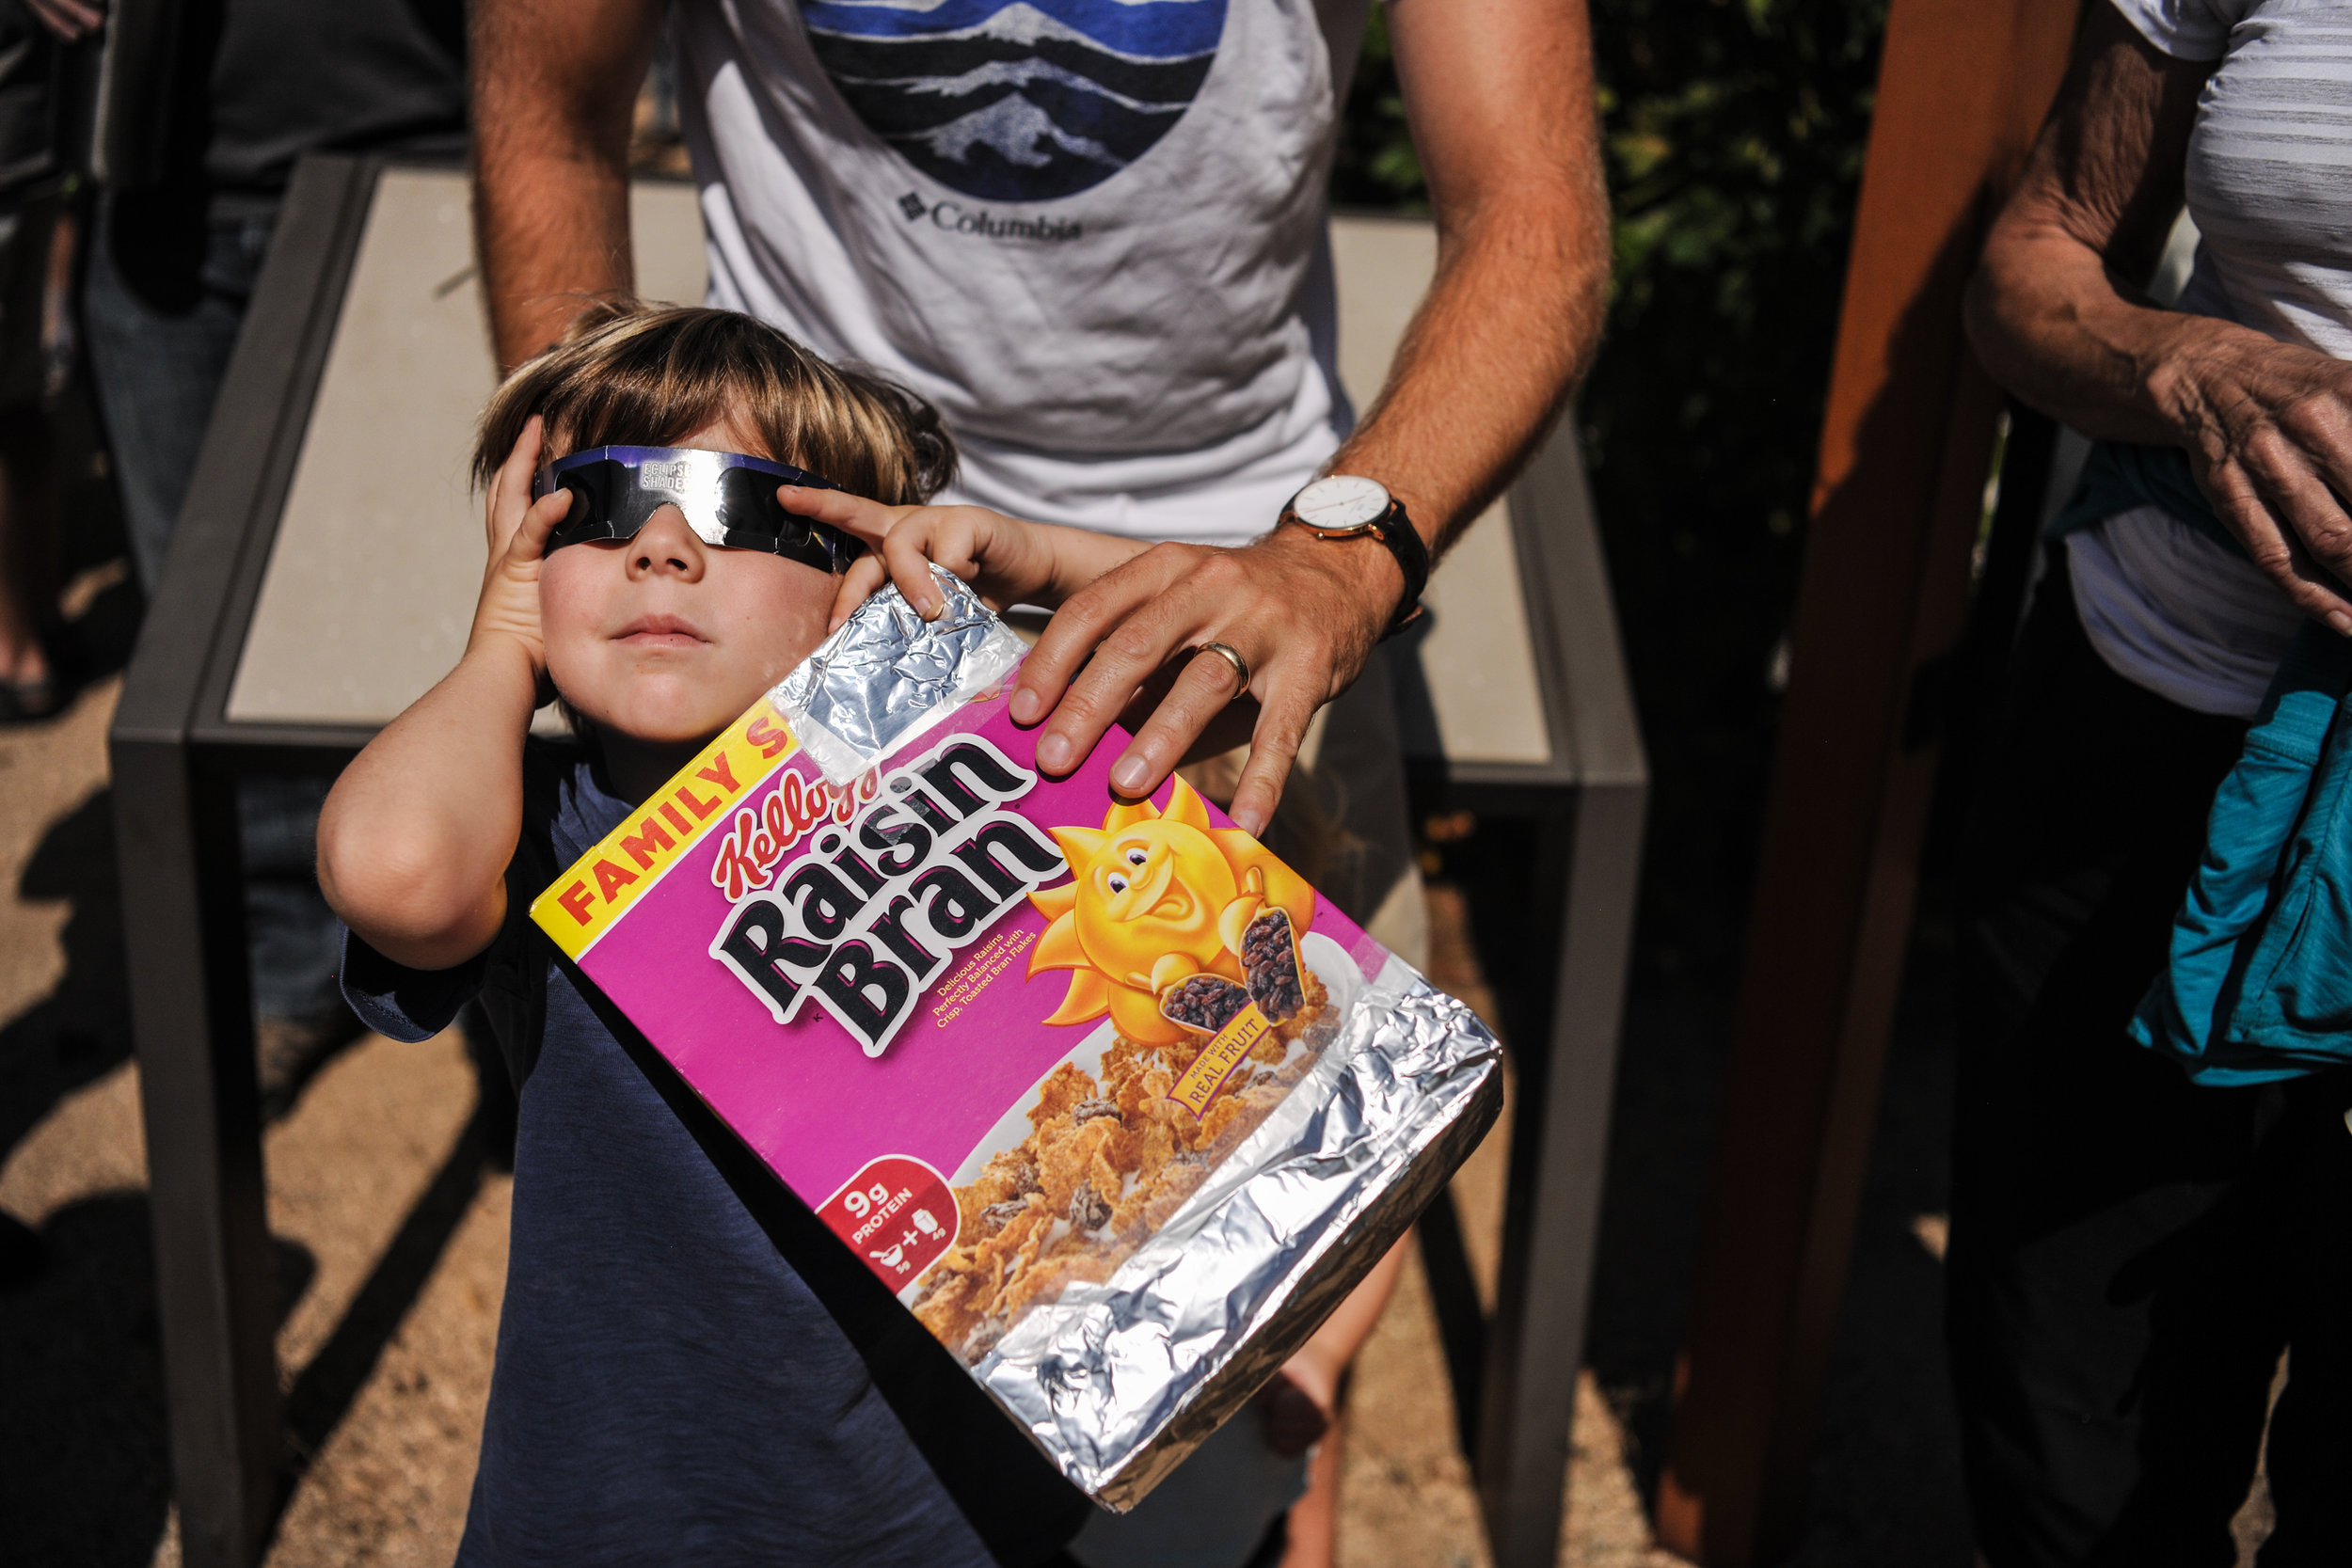 Malibu resident Miles Carlsen, 5, plays with eclipse glasses before his first day of kindergarten at King Gillette Ranch in Calabasas, California, on Monday, Aug. 21, 2017. Morgan Lieberman Las Vegas Review-Journal